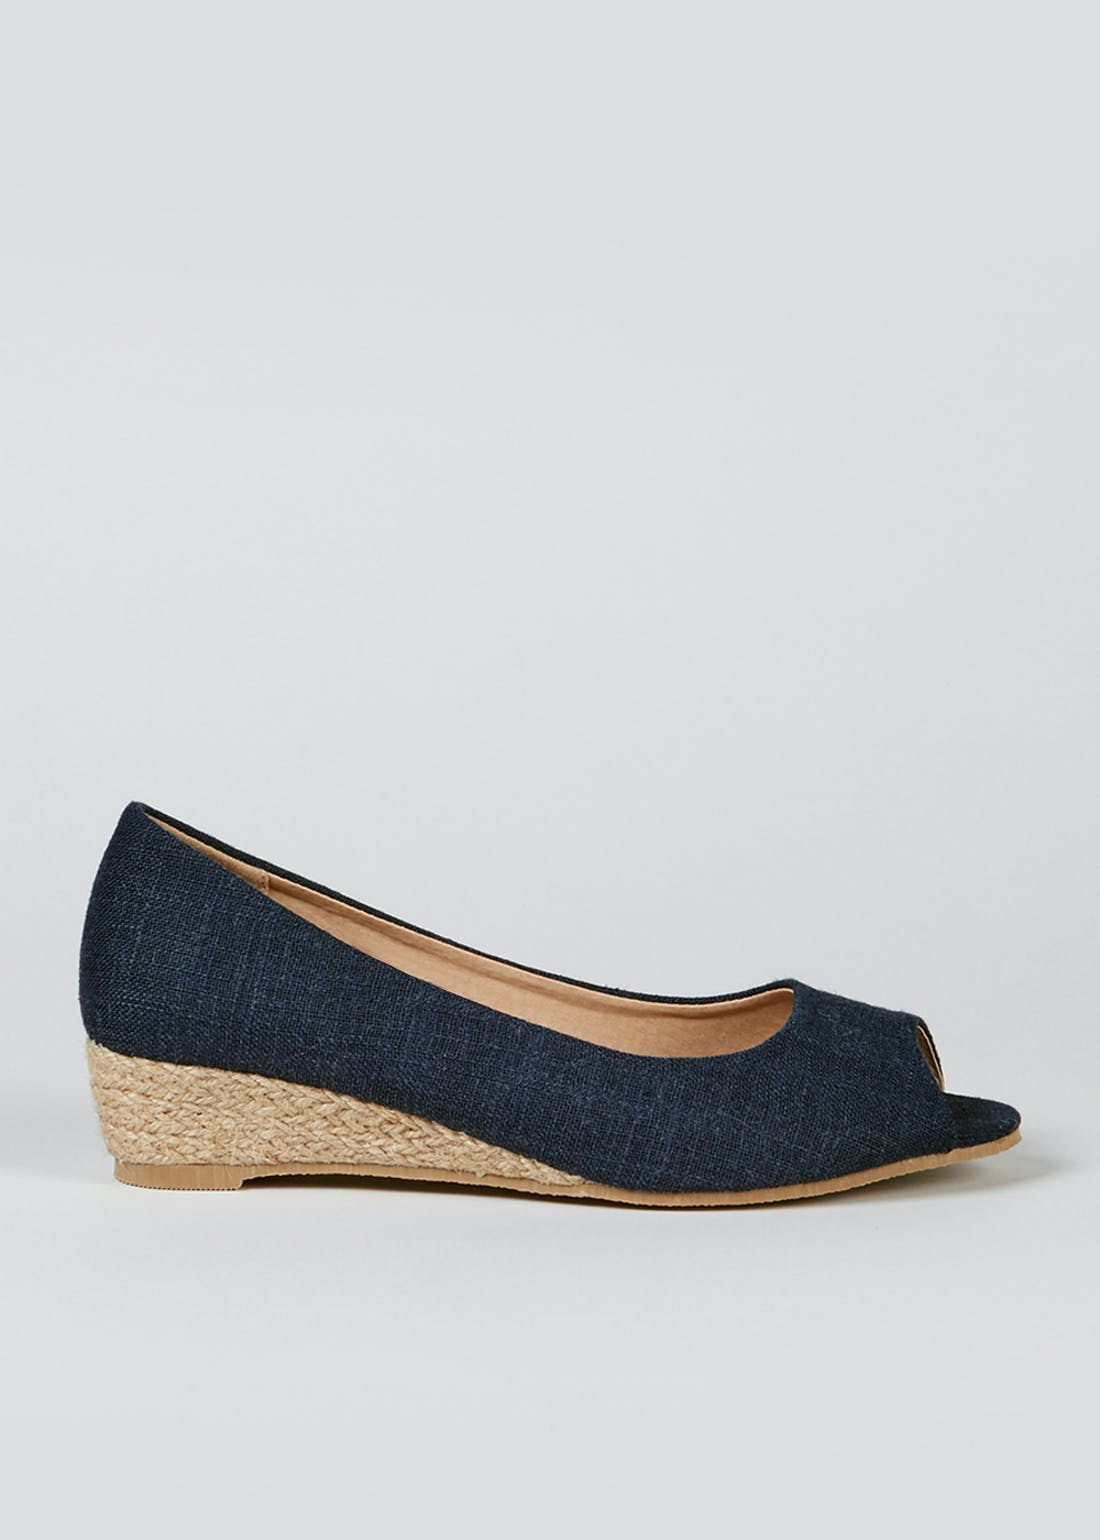 Peep Toe Wedge Espadrilles